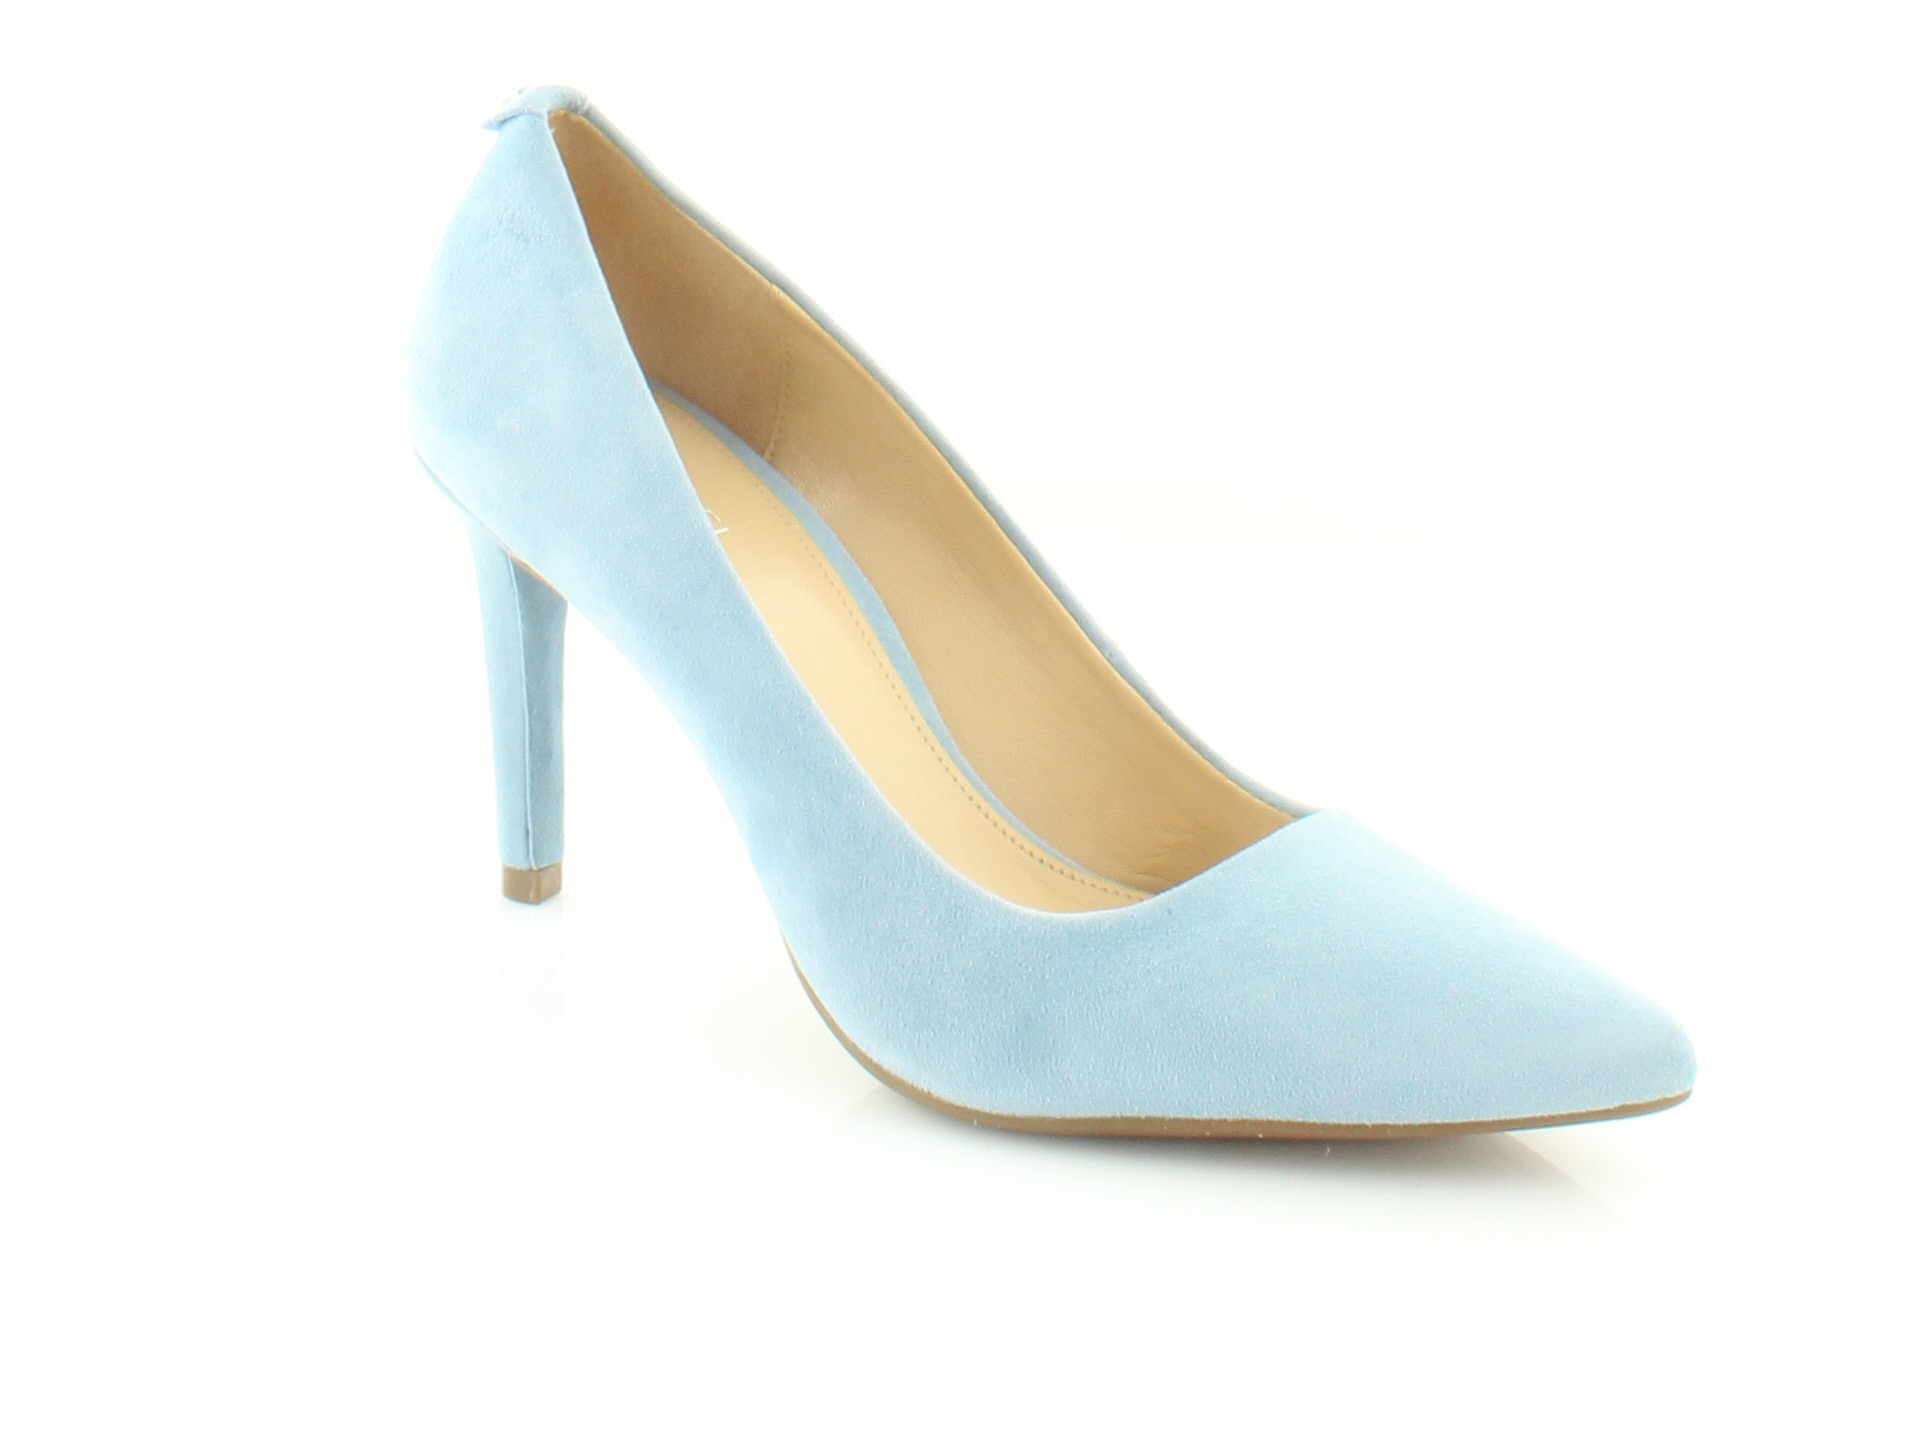 d43d955205b2 MICHAEL Michael Kors Dorothy Flex Pump Blue Womens Shoes 7 M Heels ...